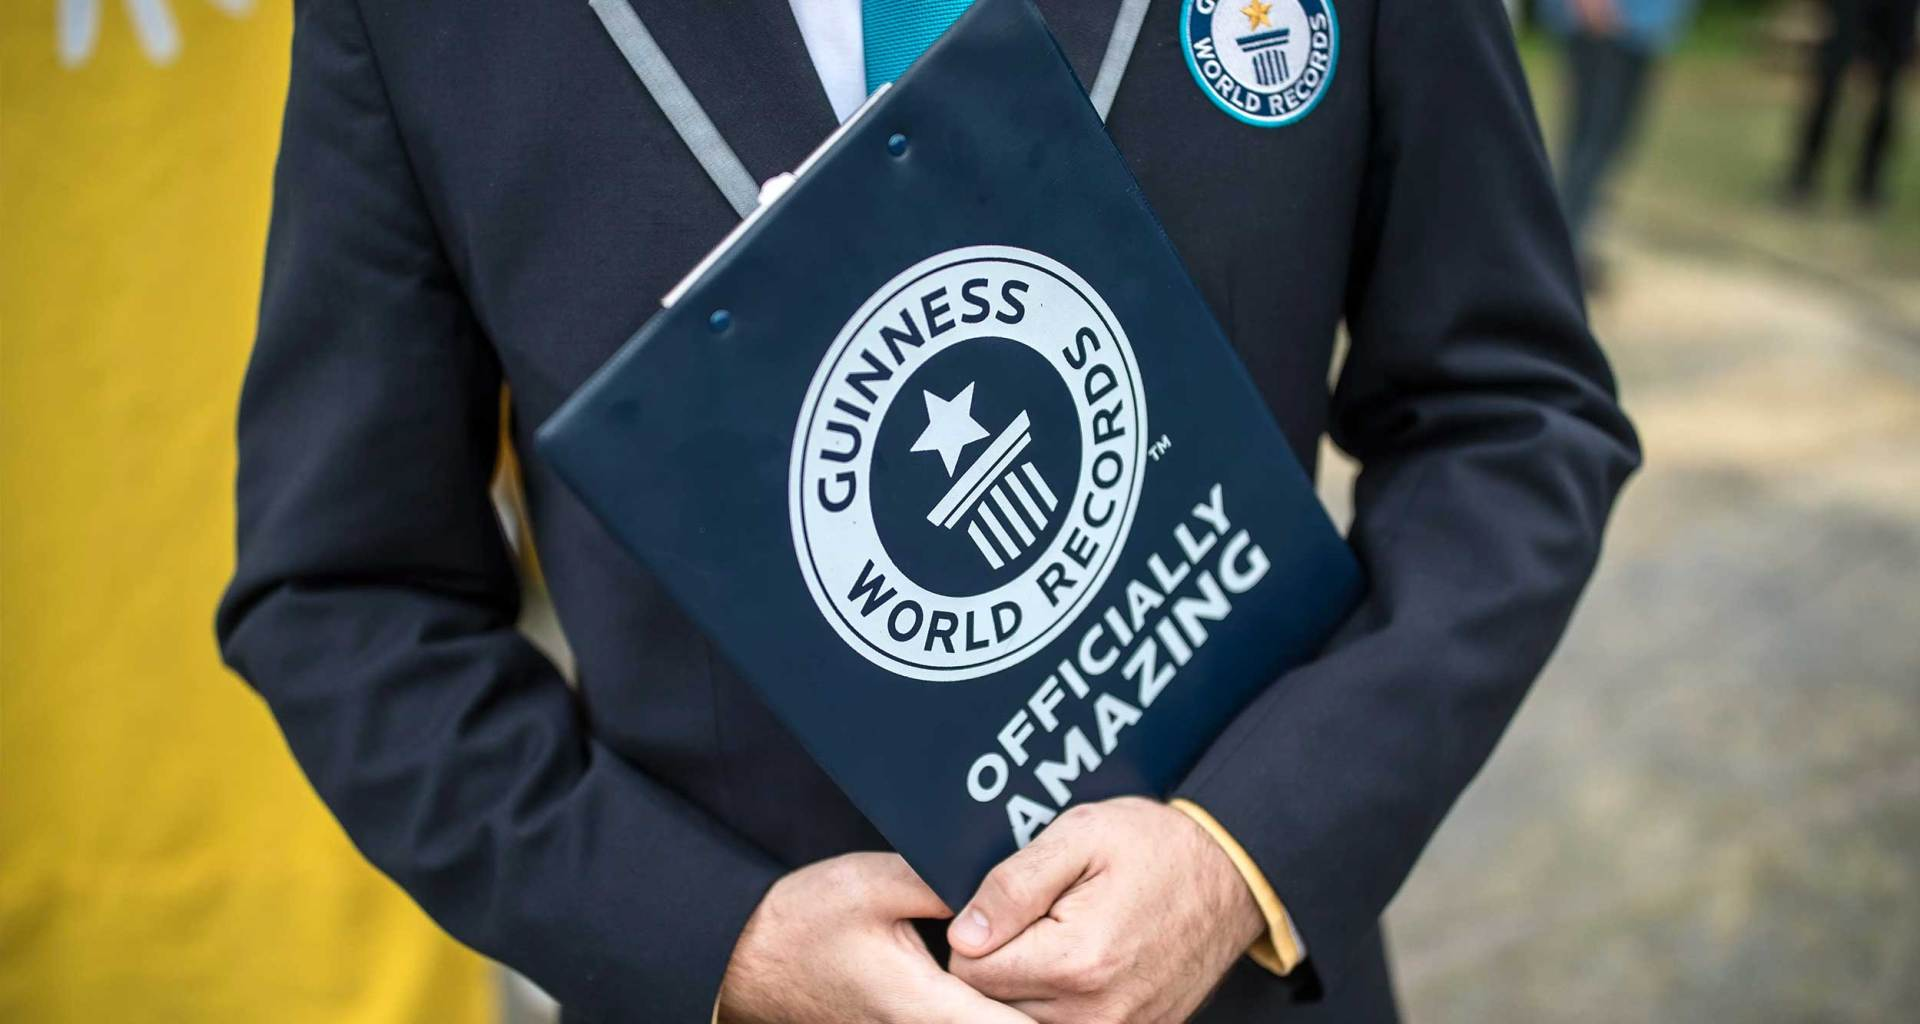 Man in suit holding folder with Guinness World Records logo.